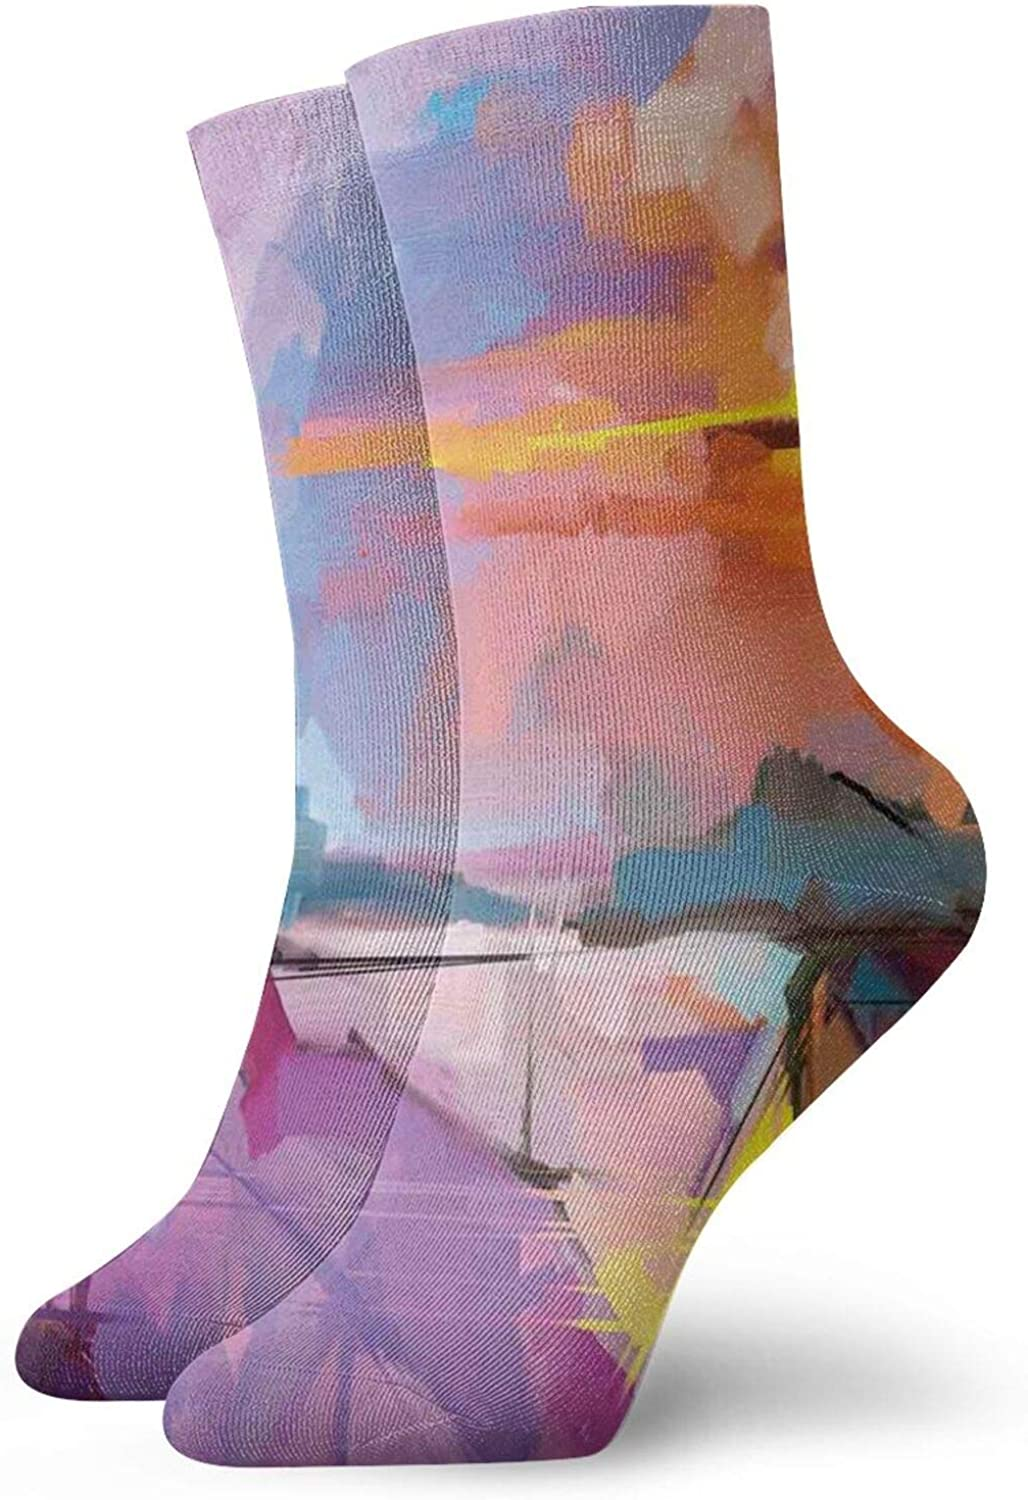 Compression Overseas parallel import regular item Ankle Time sale Socks for Athletic C Unisex Running